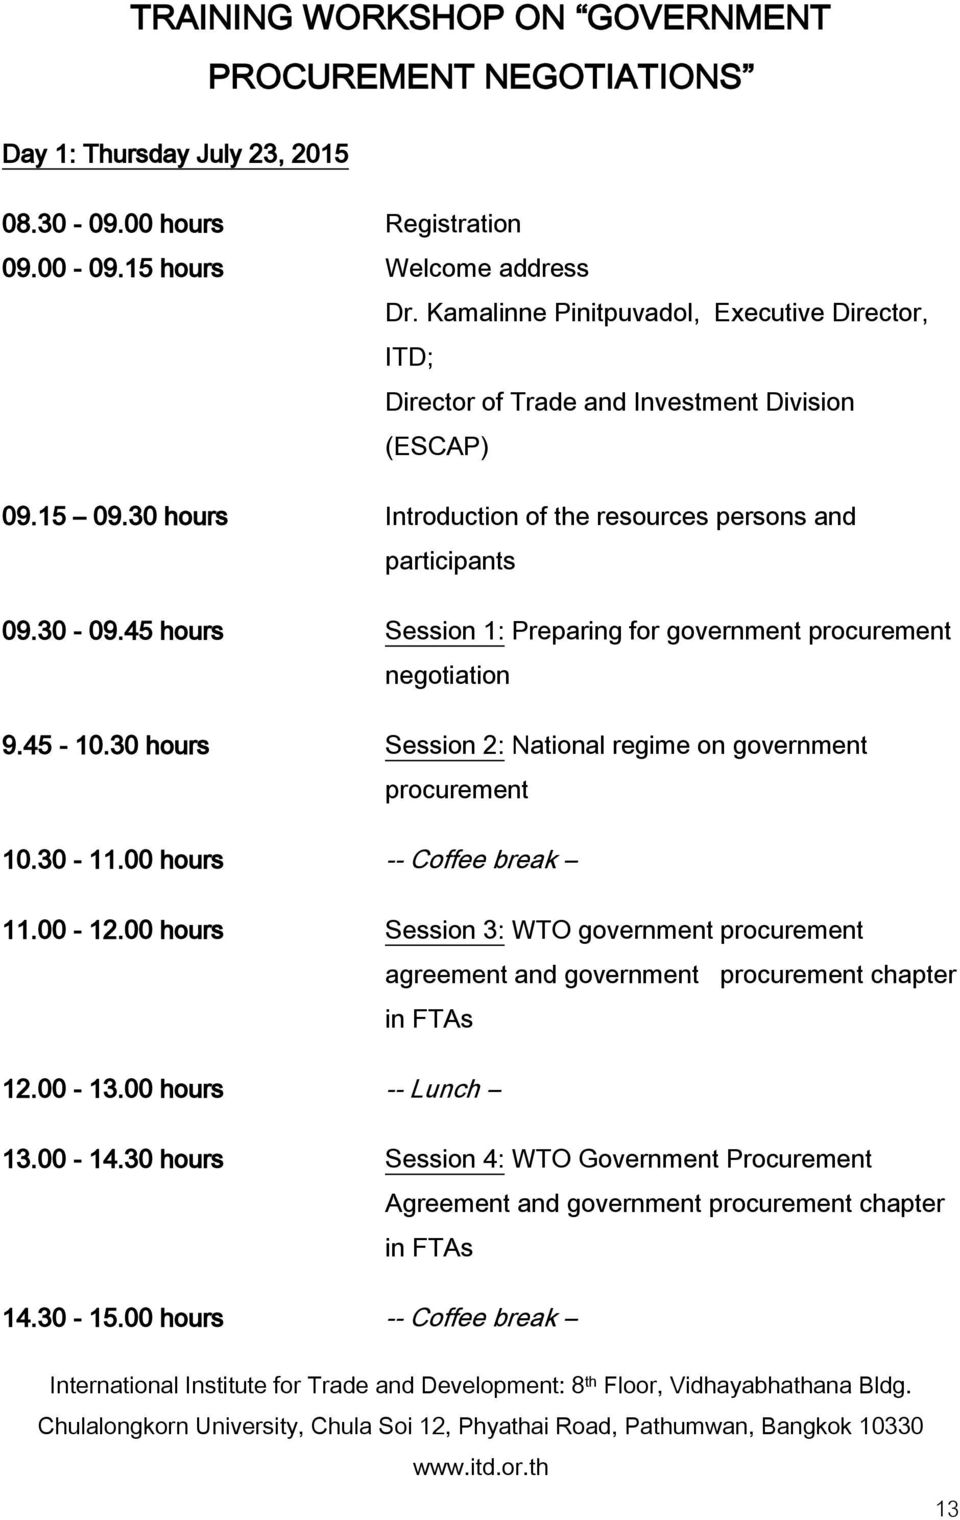 45 hours Session 1: Preparing for government procurement negotiation 9.45-10.30 hours Session 2: National regime on government procurement 10.30-11.00 hours -- Coffee break 11.00-12.